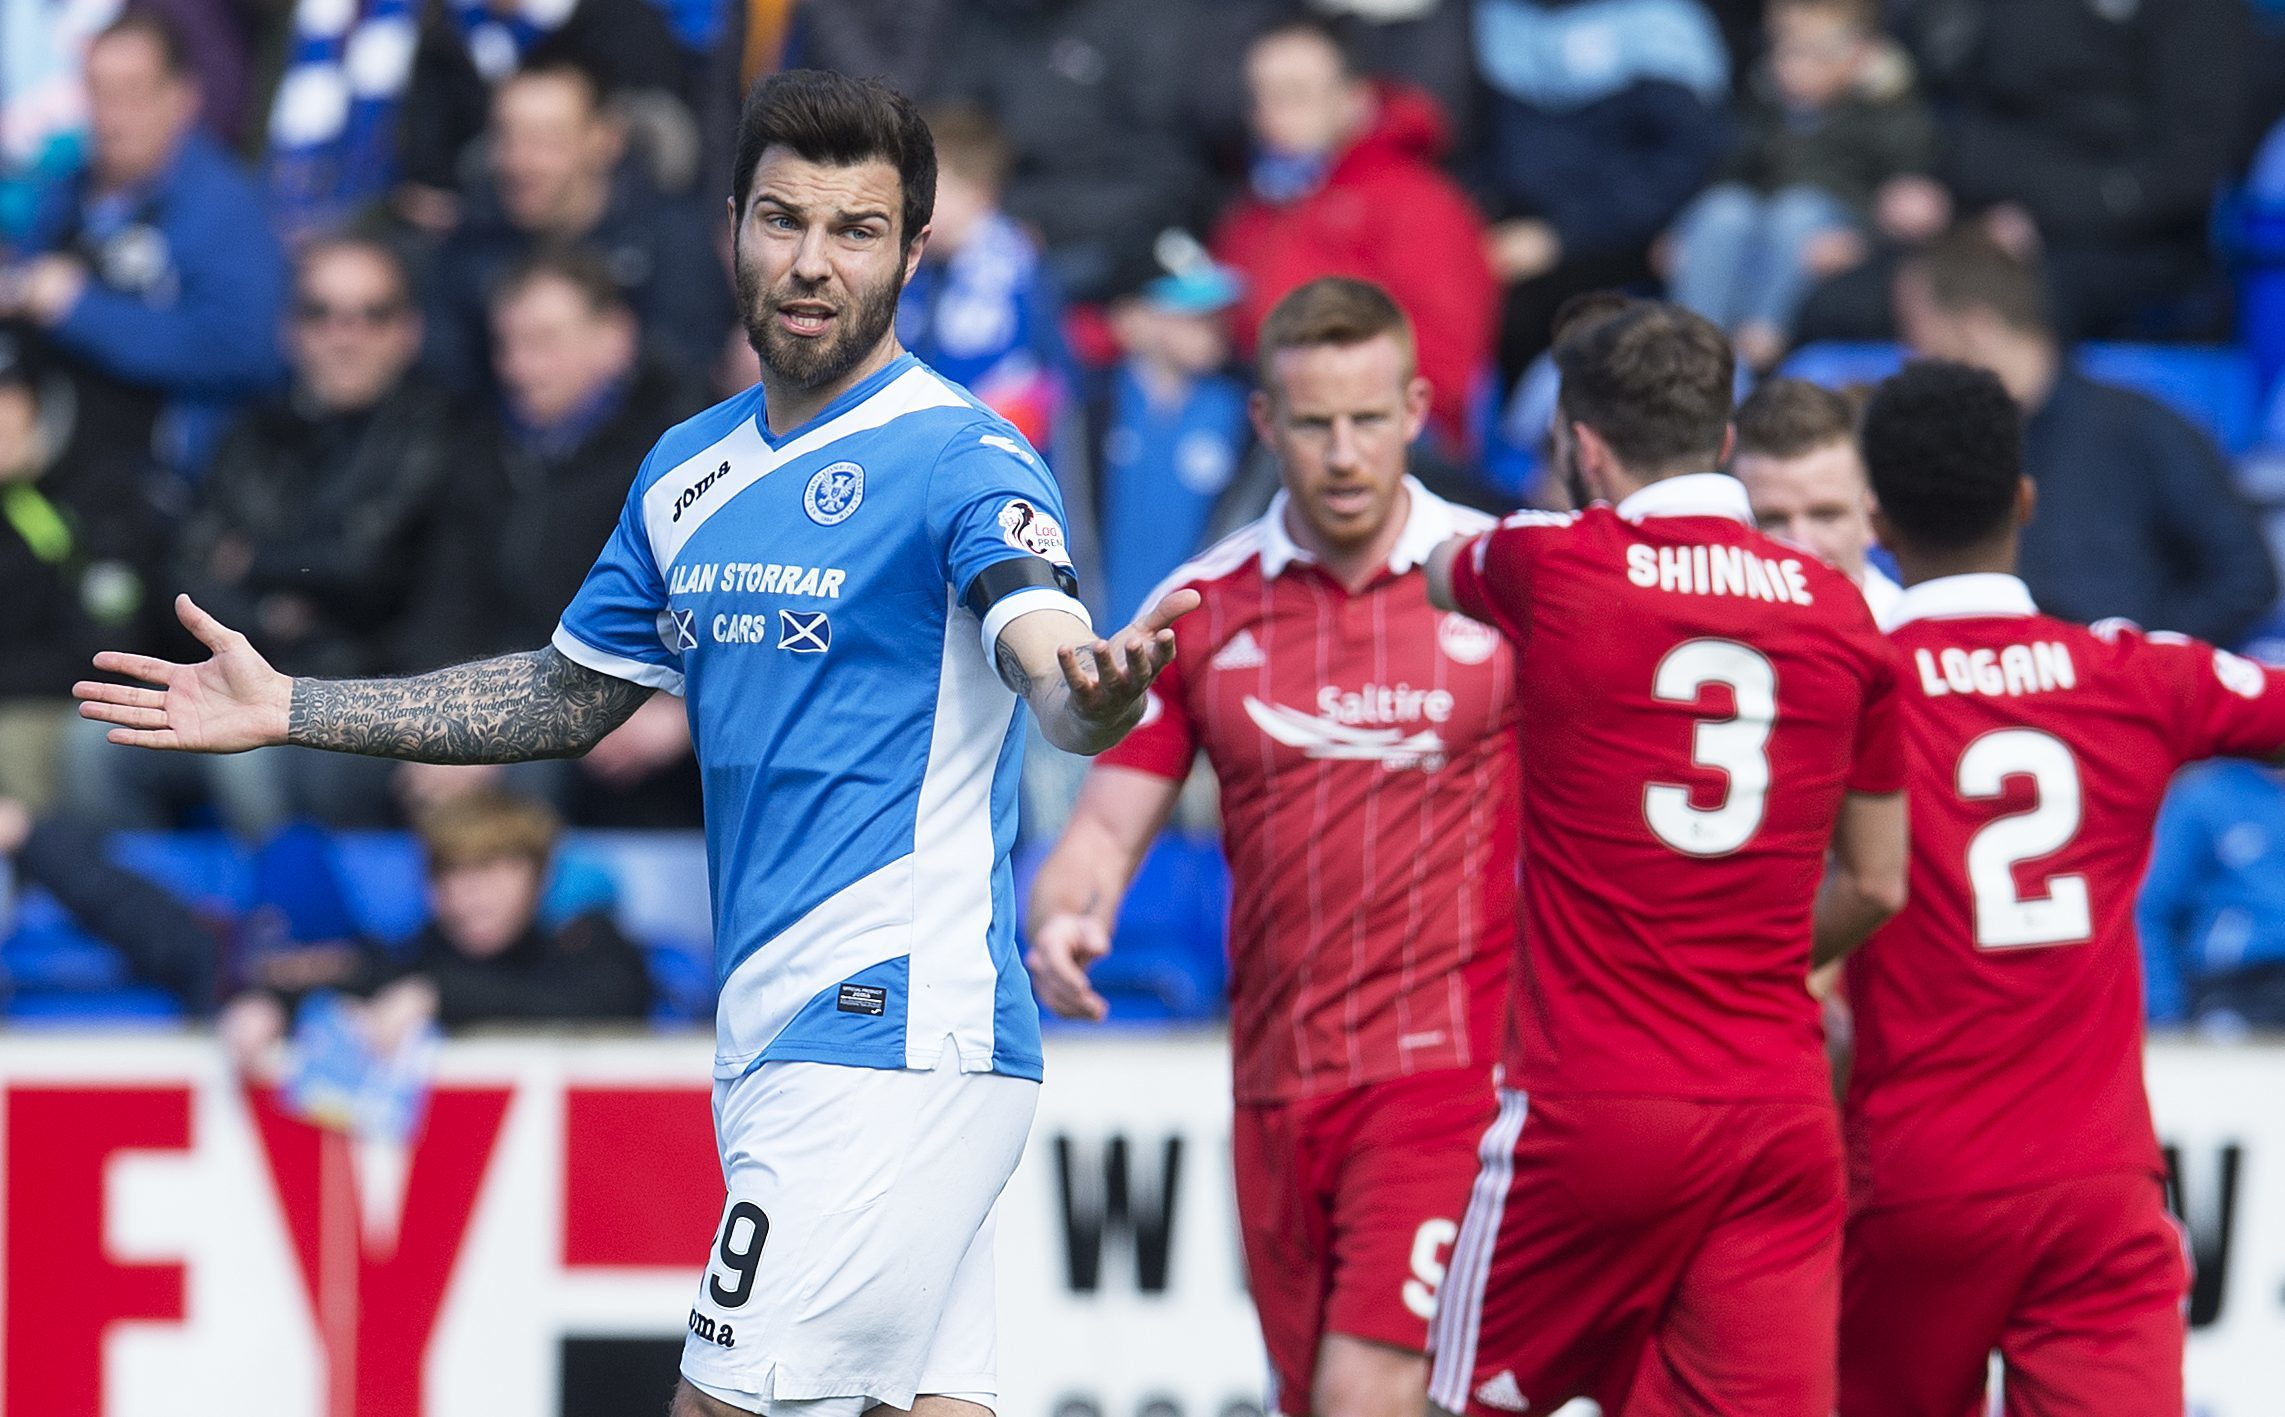 St Johnstone's Richard Foster is dejected after Aberdeen's second goal.